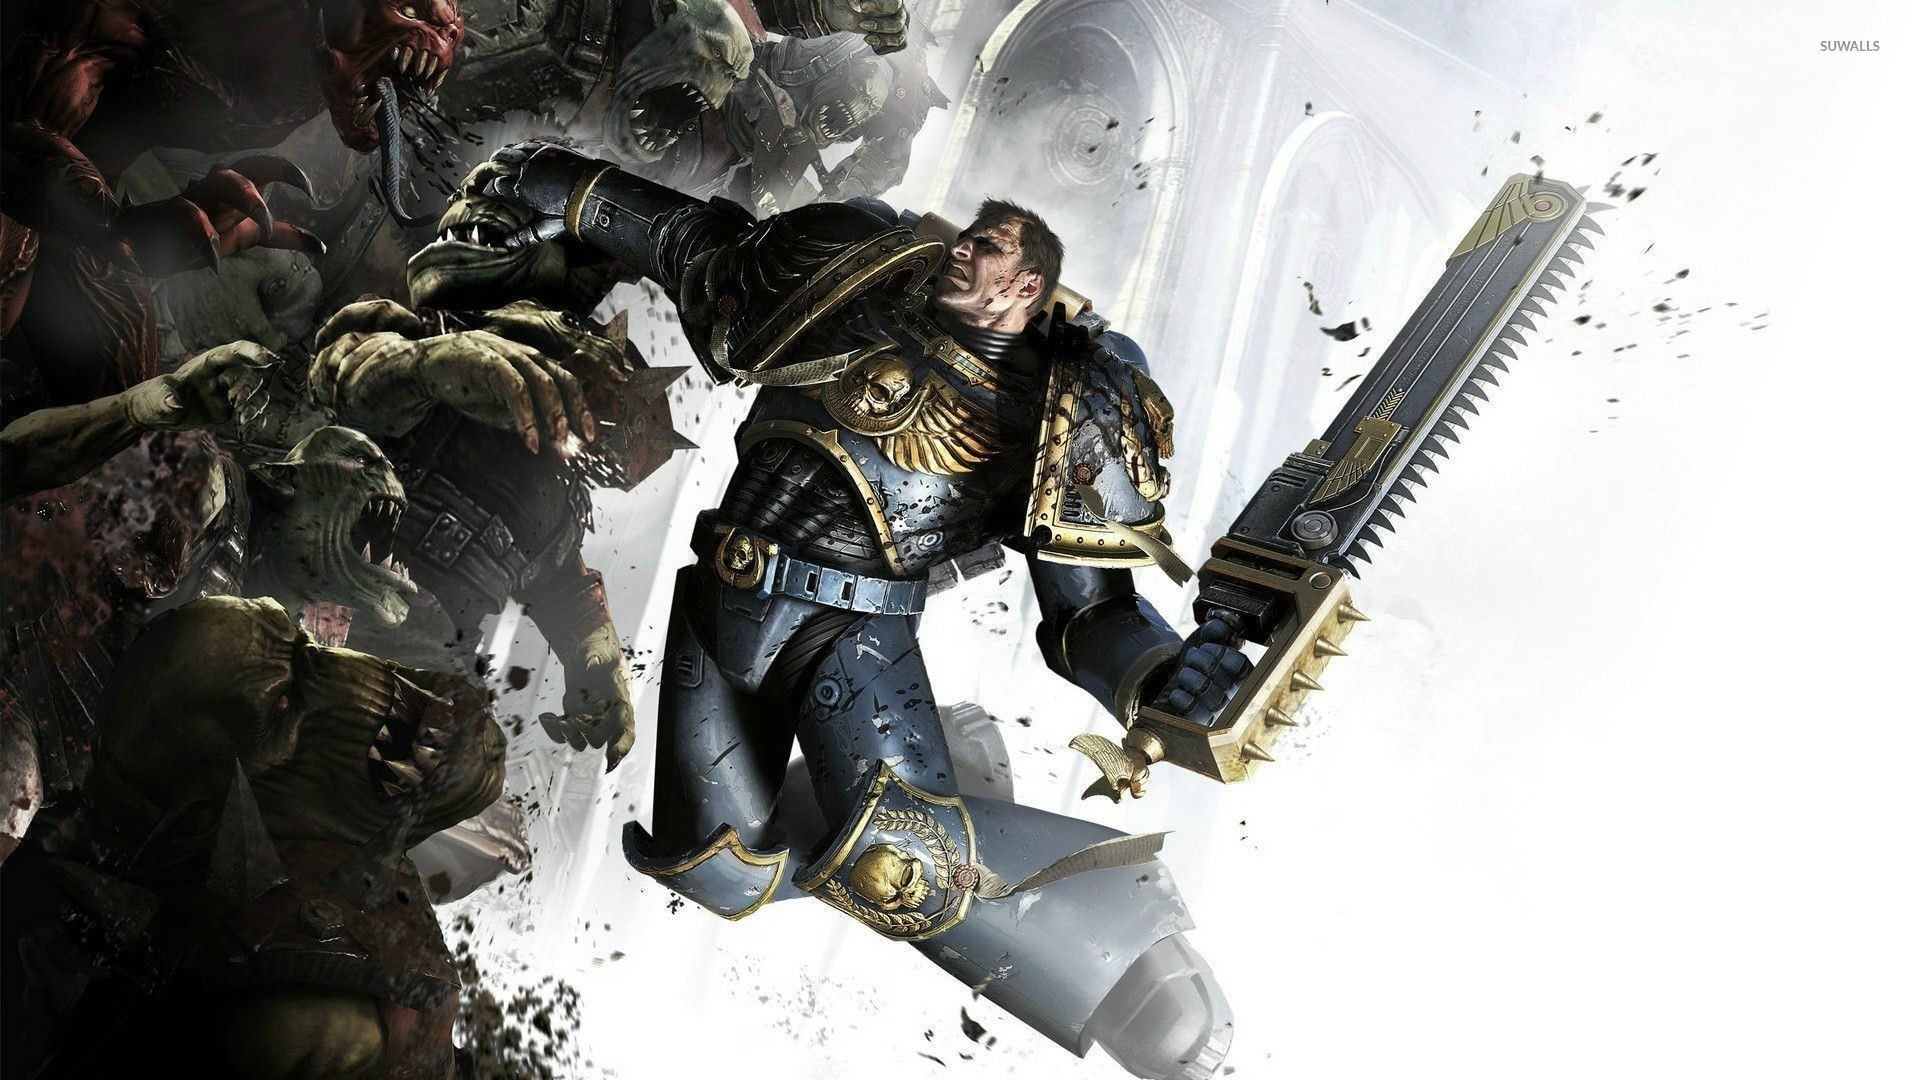 1920x1080 Warhammer 40,000 [8] wallpaper